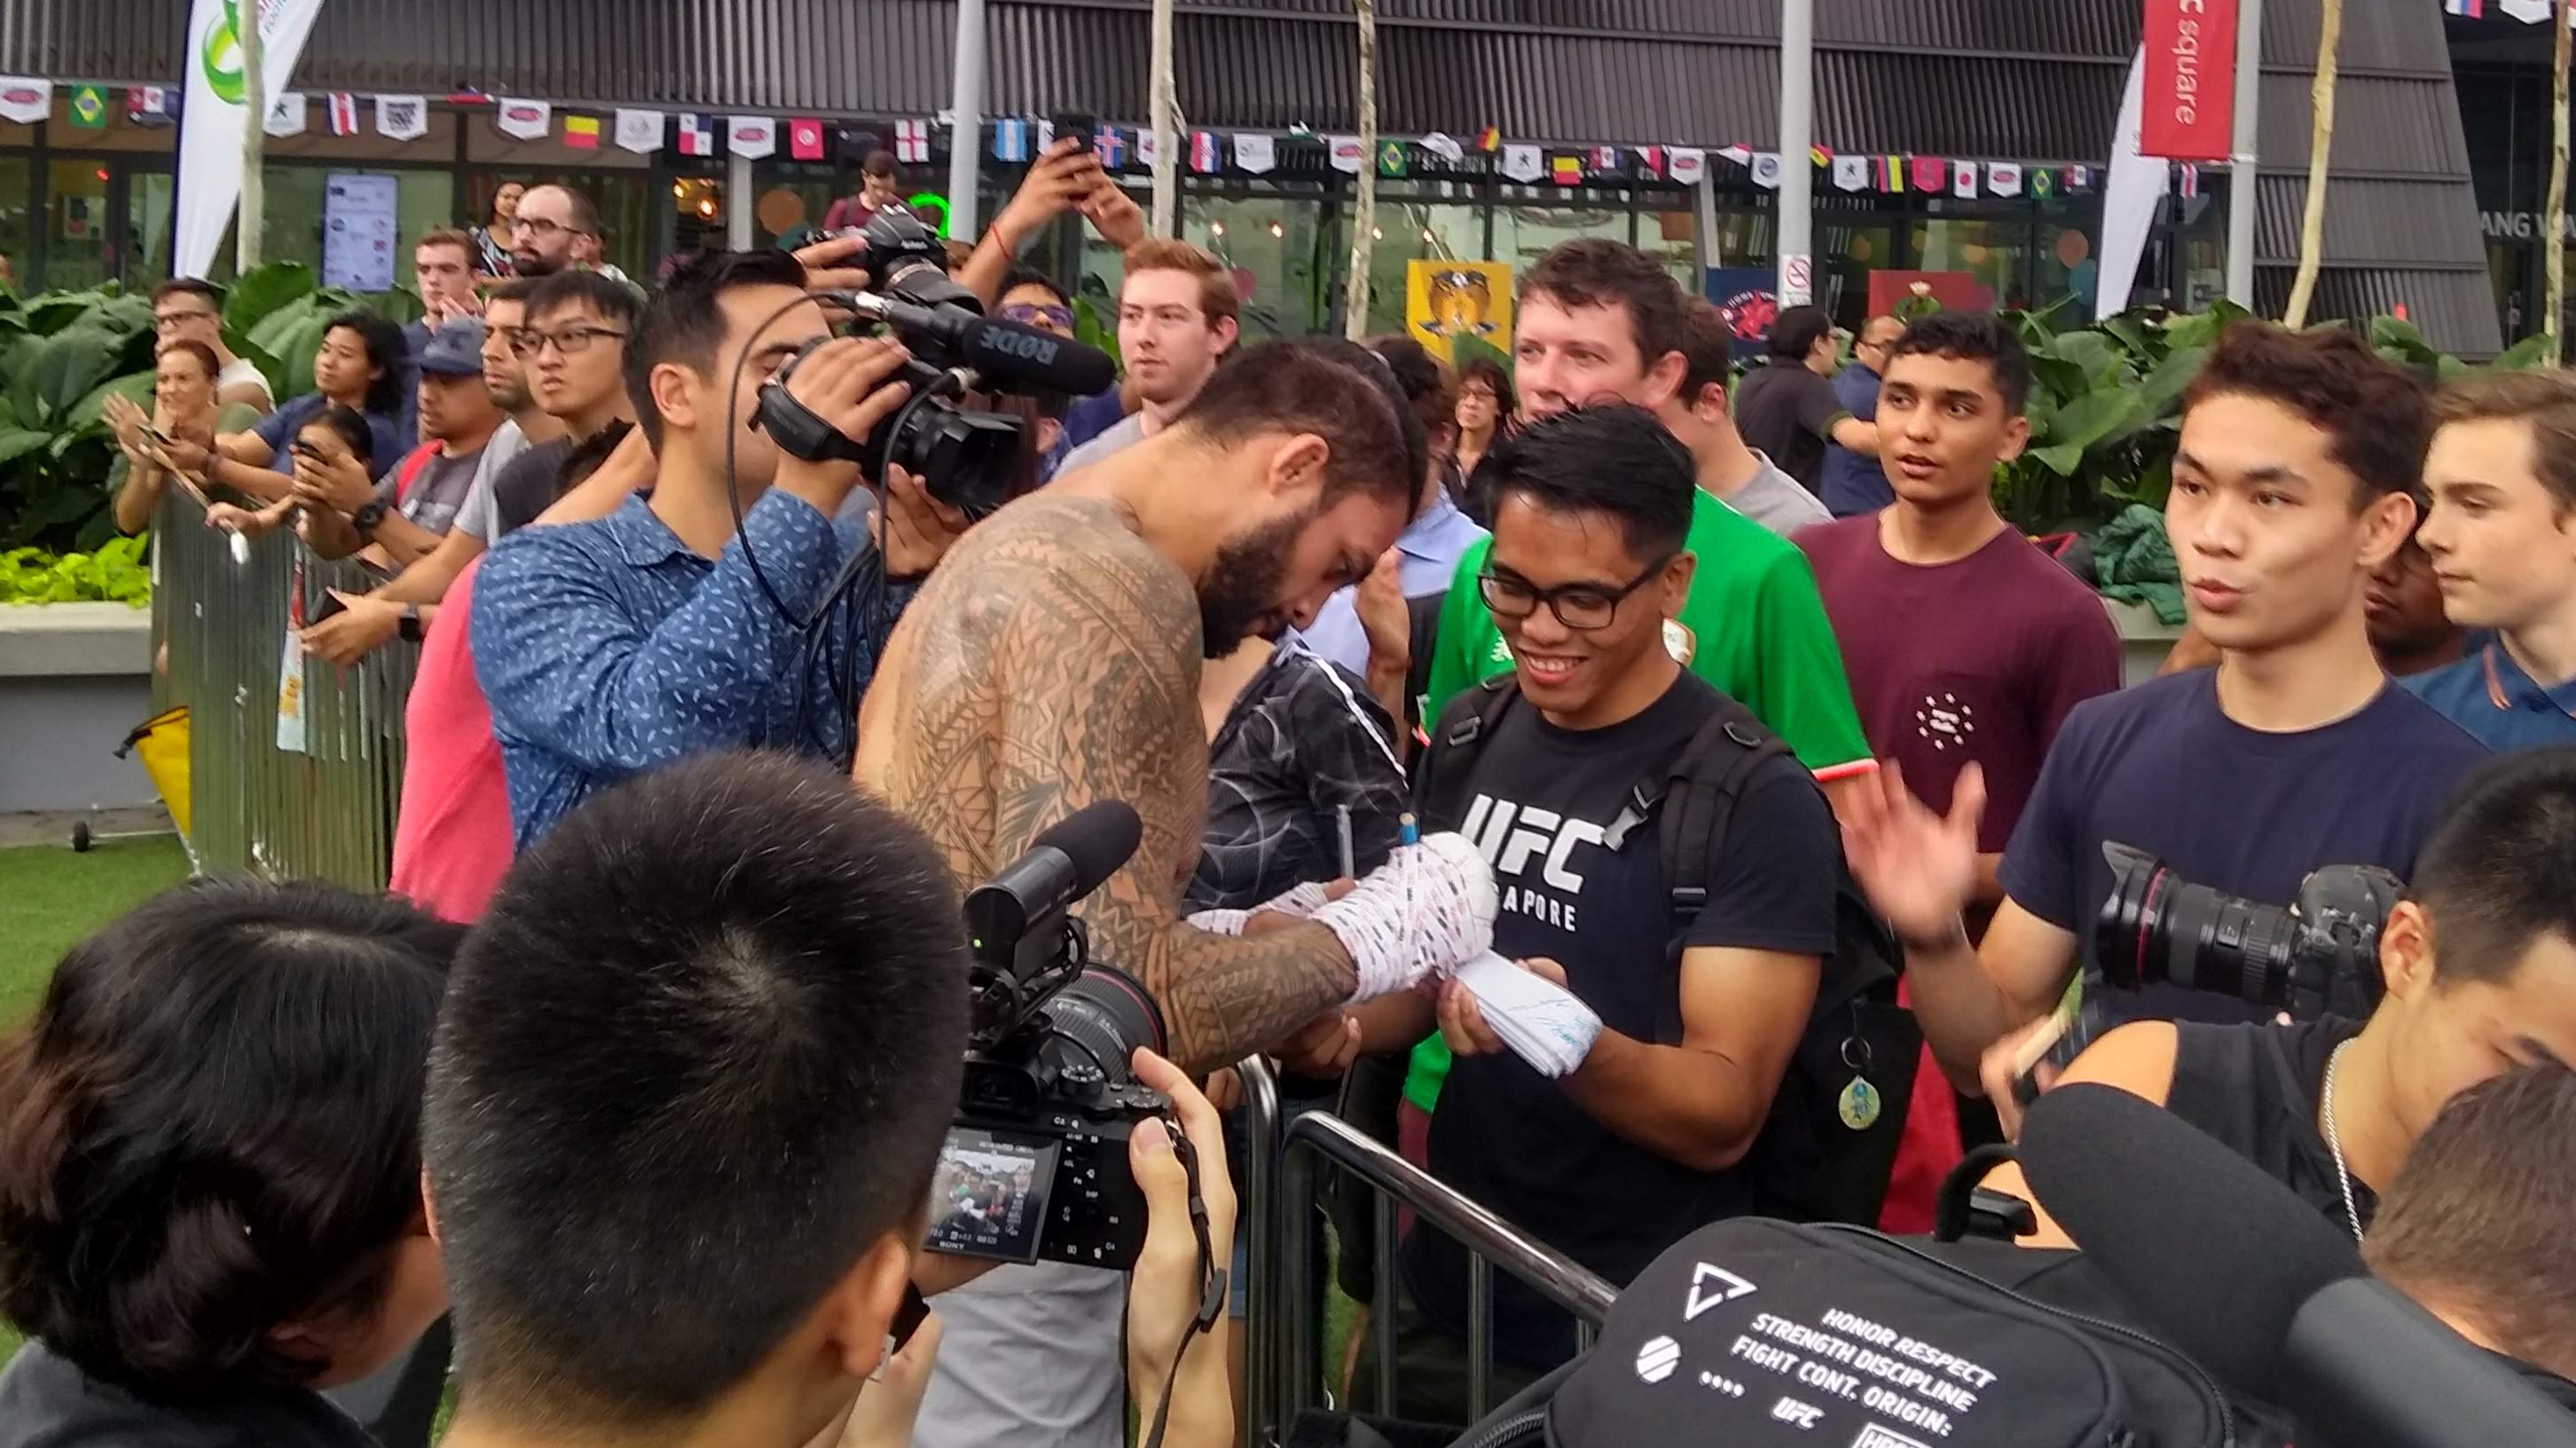 <a href='../fighter/tyson-pedro'>Tyson Pedro</a> signs autographs for fans following his open workout for Fight Night Singapore on 6/20/18 (Photo by Steve Latrell/Zuffa LLC)